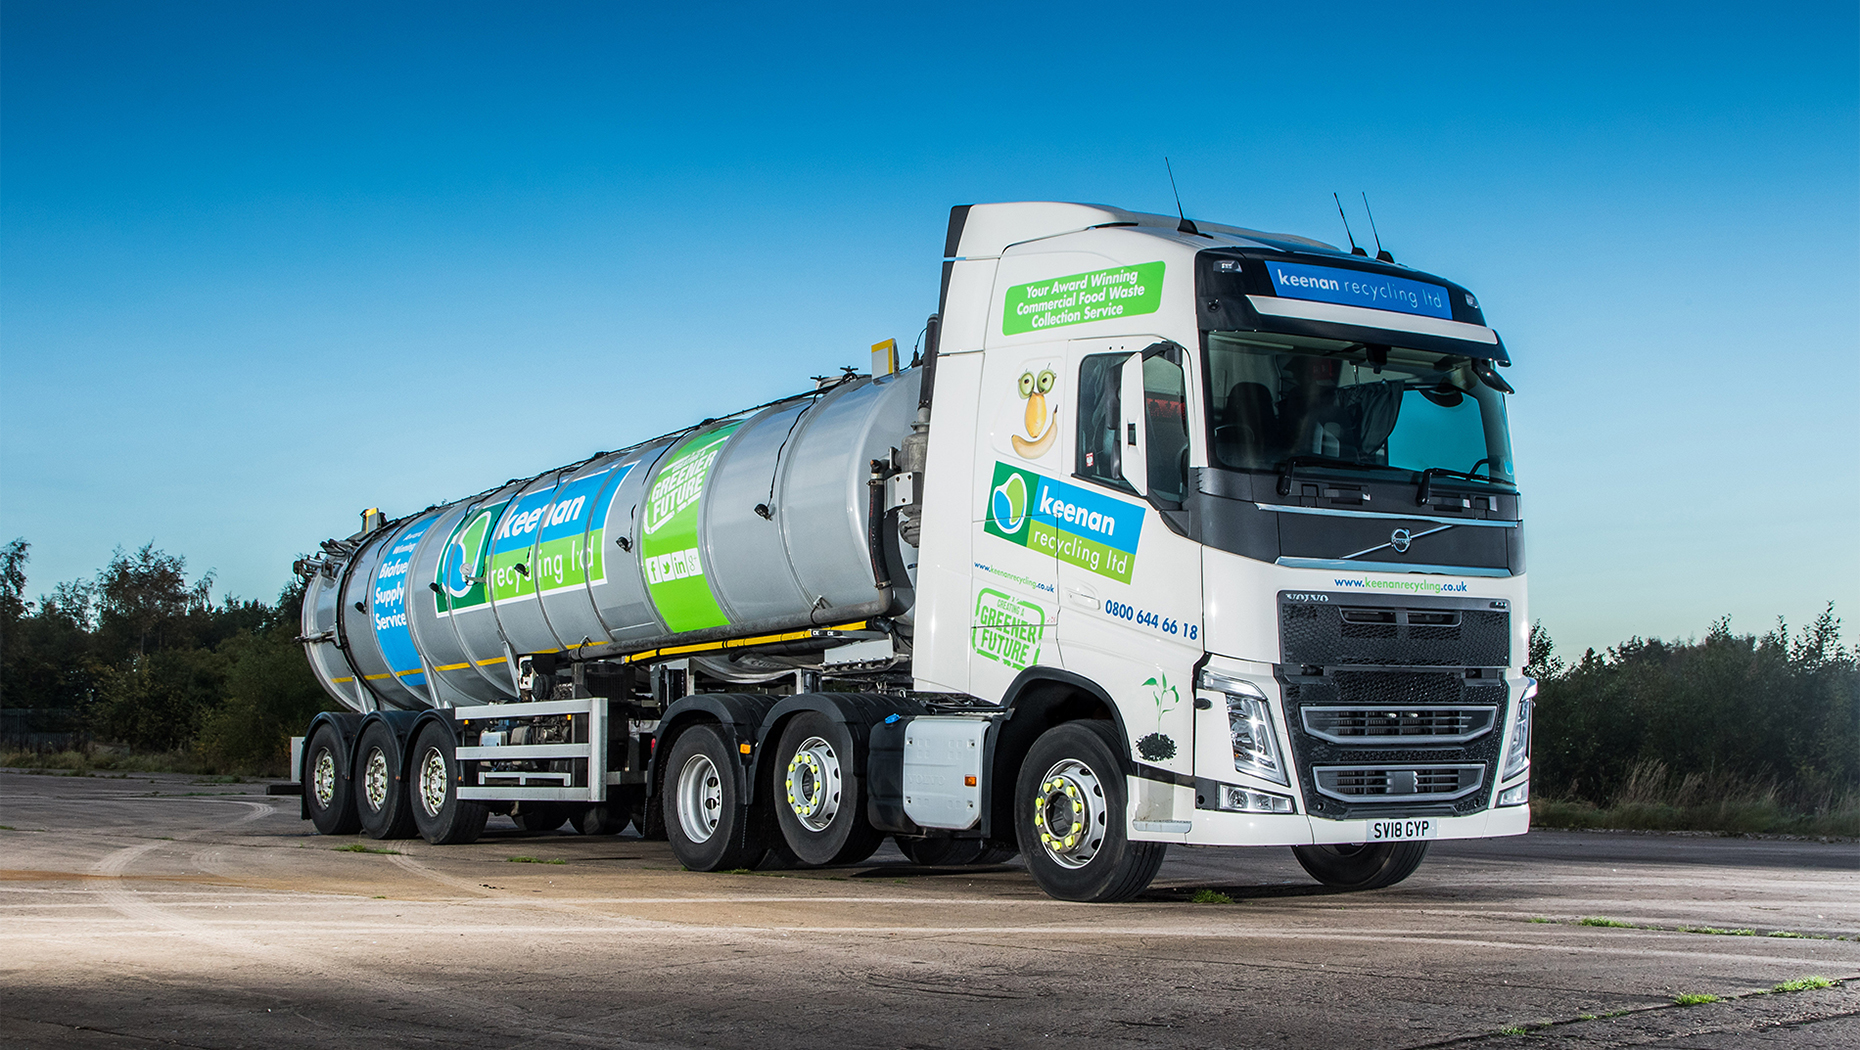 A new Volvo tractor unit fuels growth at Keenan Recycling